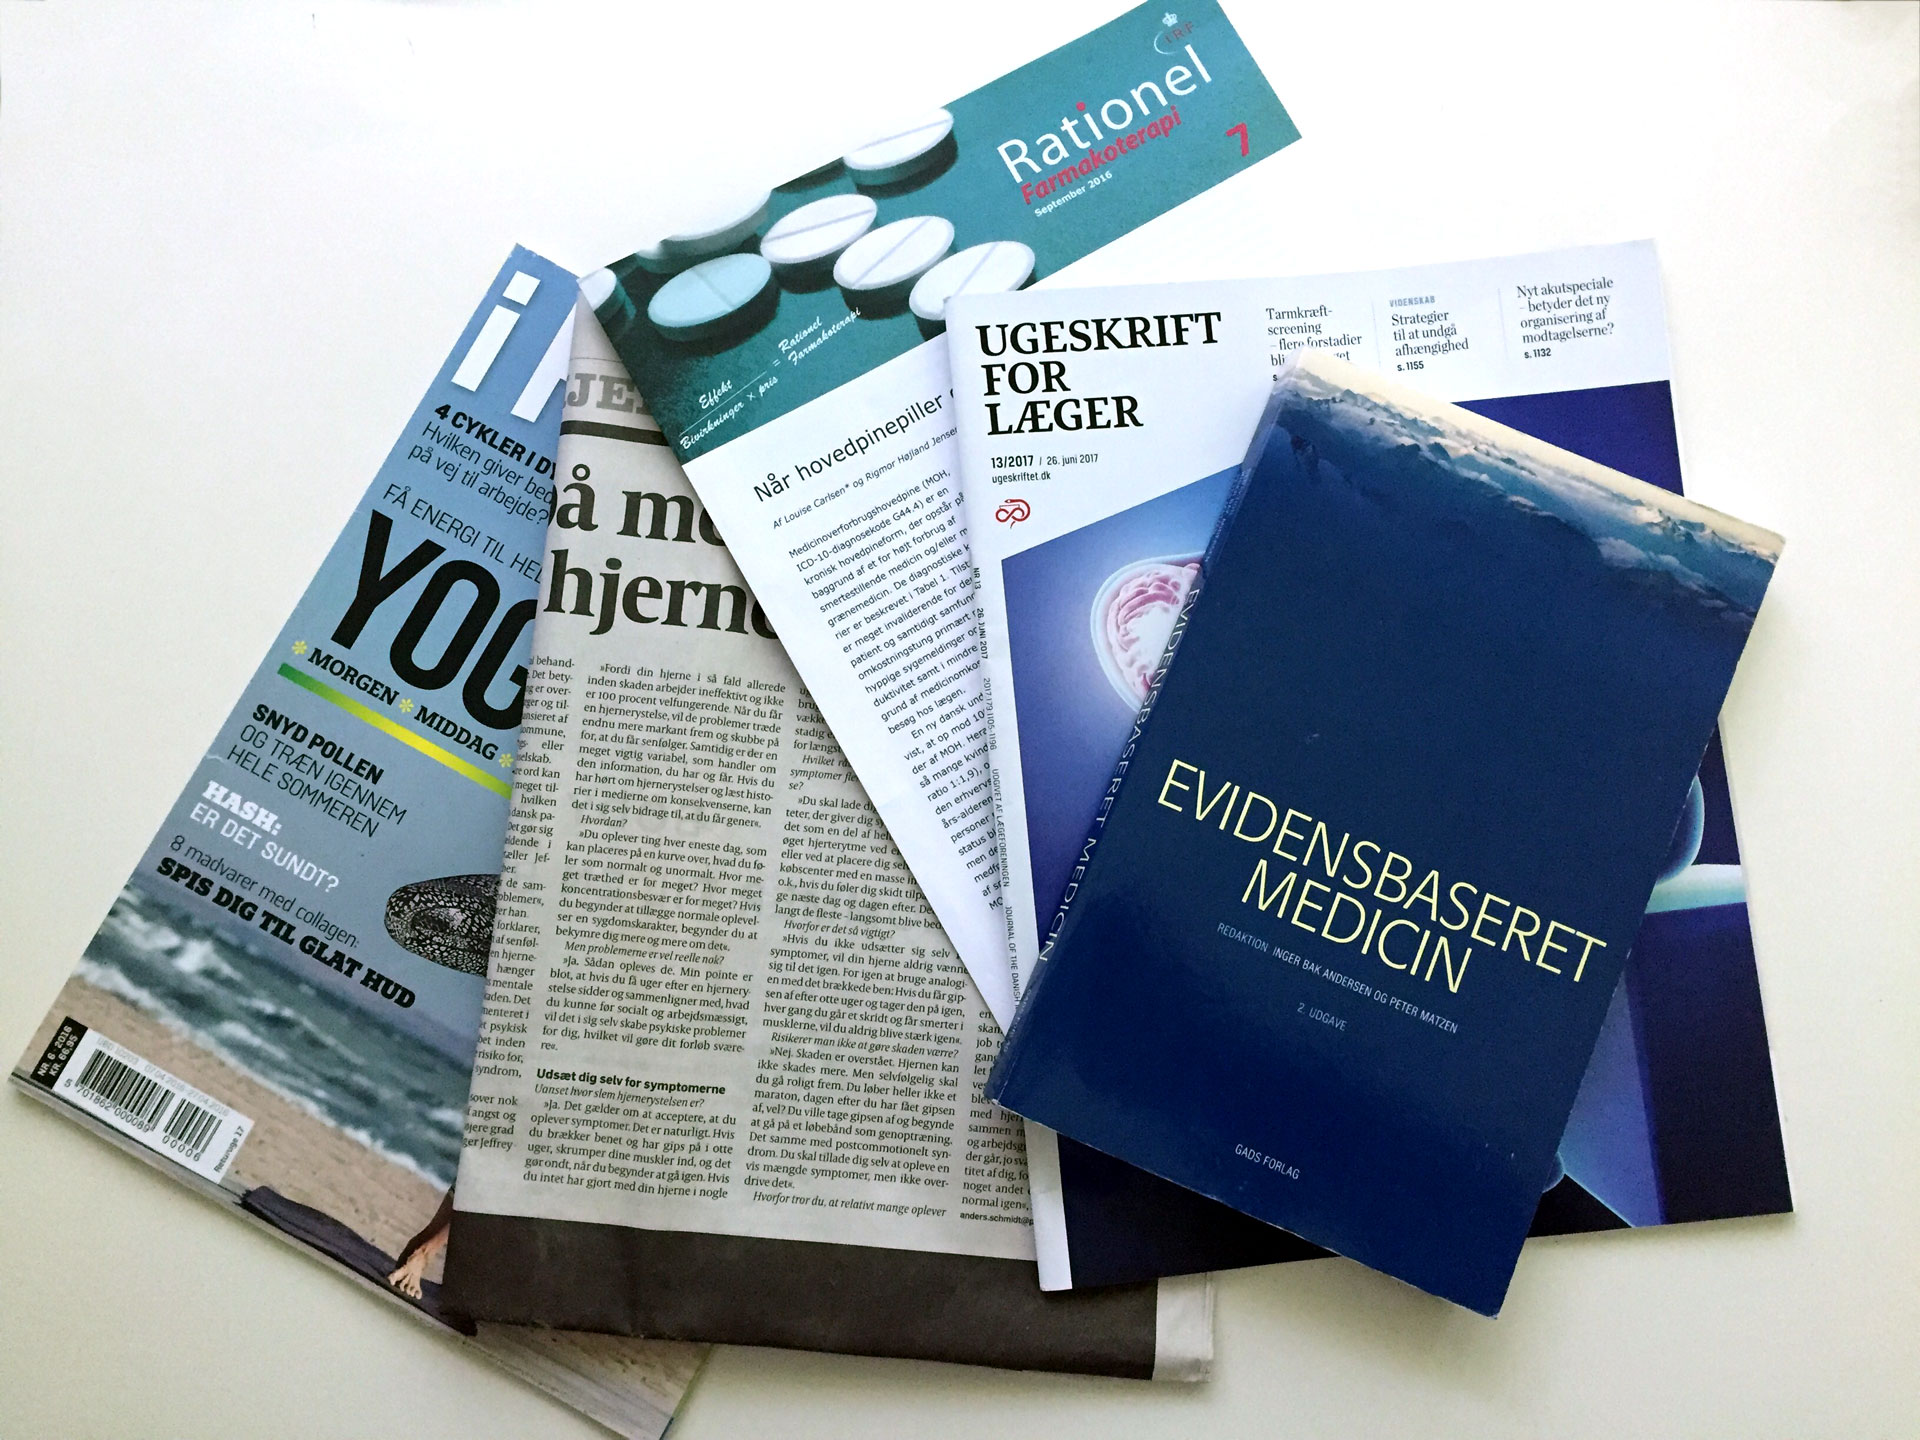 hjernerystelse - commotio - forskning - litteratur